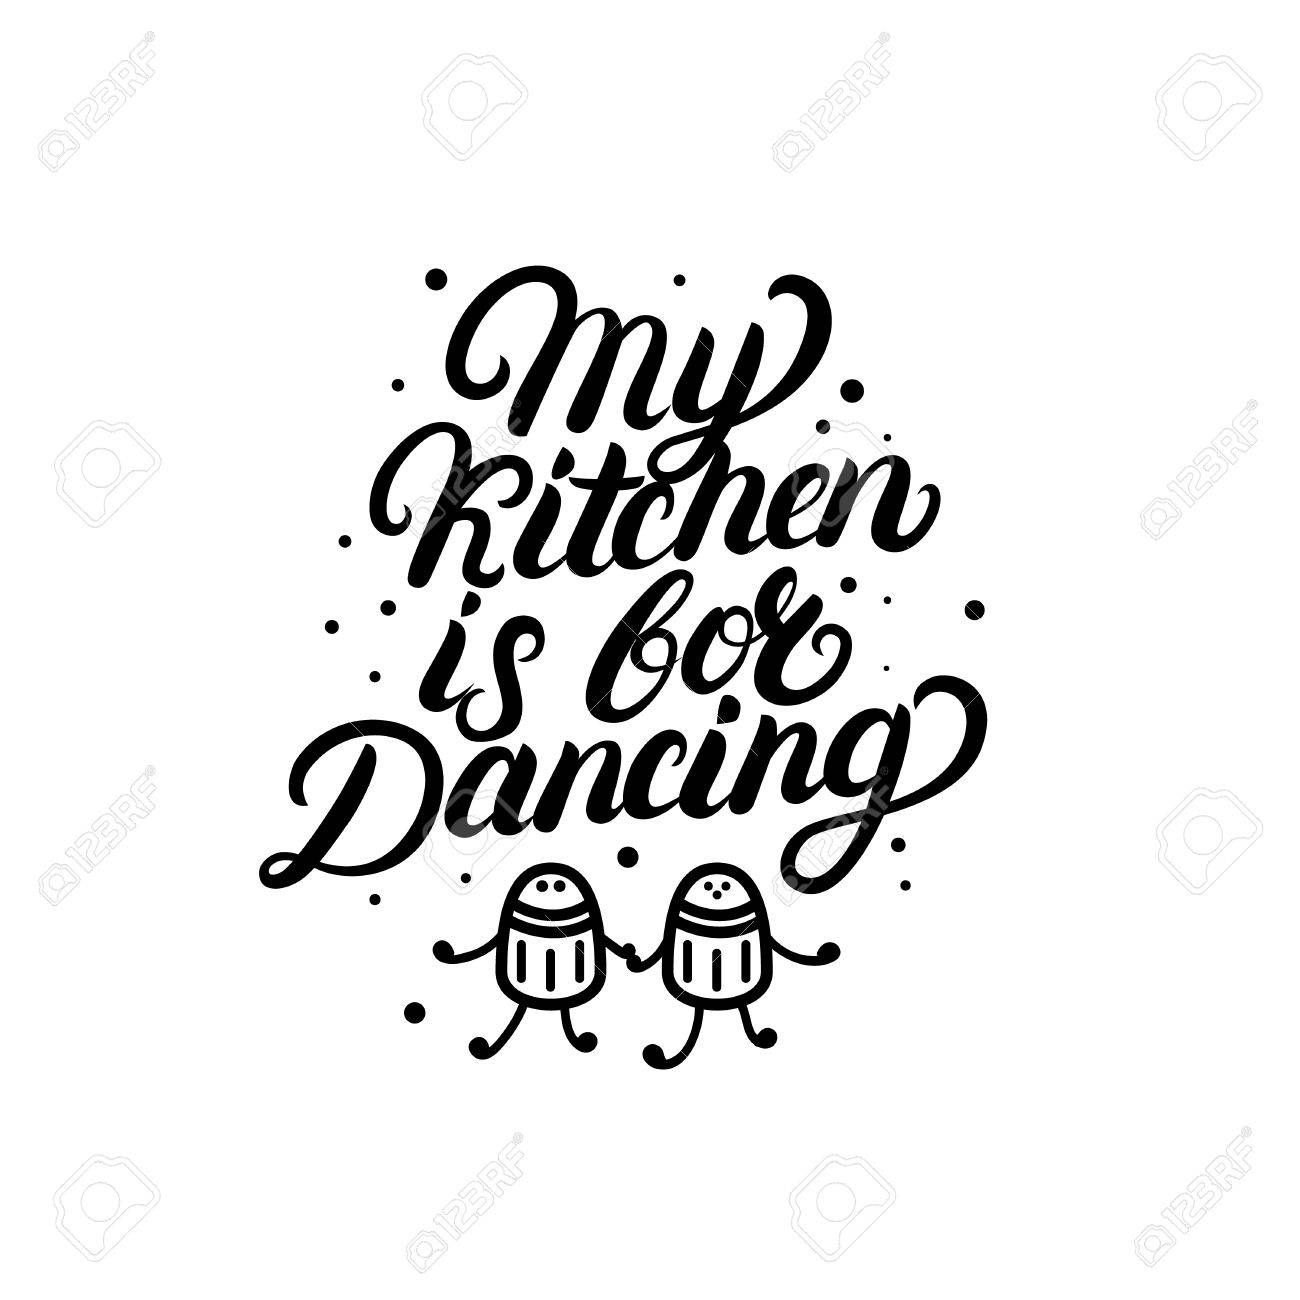 My Kitchen Is For Dancing Hand Written Lettering Quote Calligraphy Royalty Free Cliparts Vectors And Stock Illustration Image 82235710